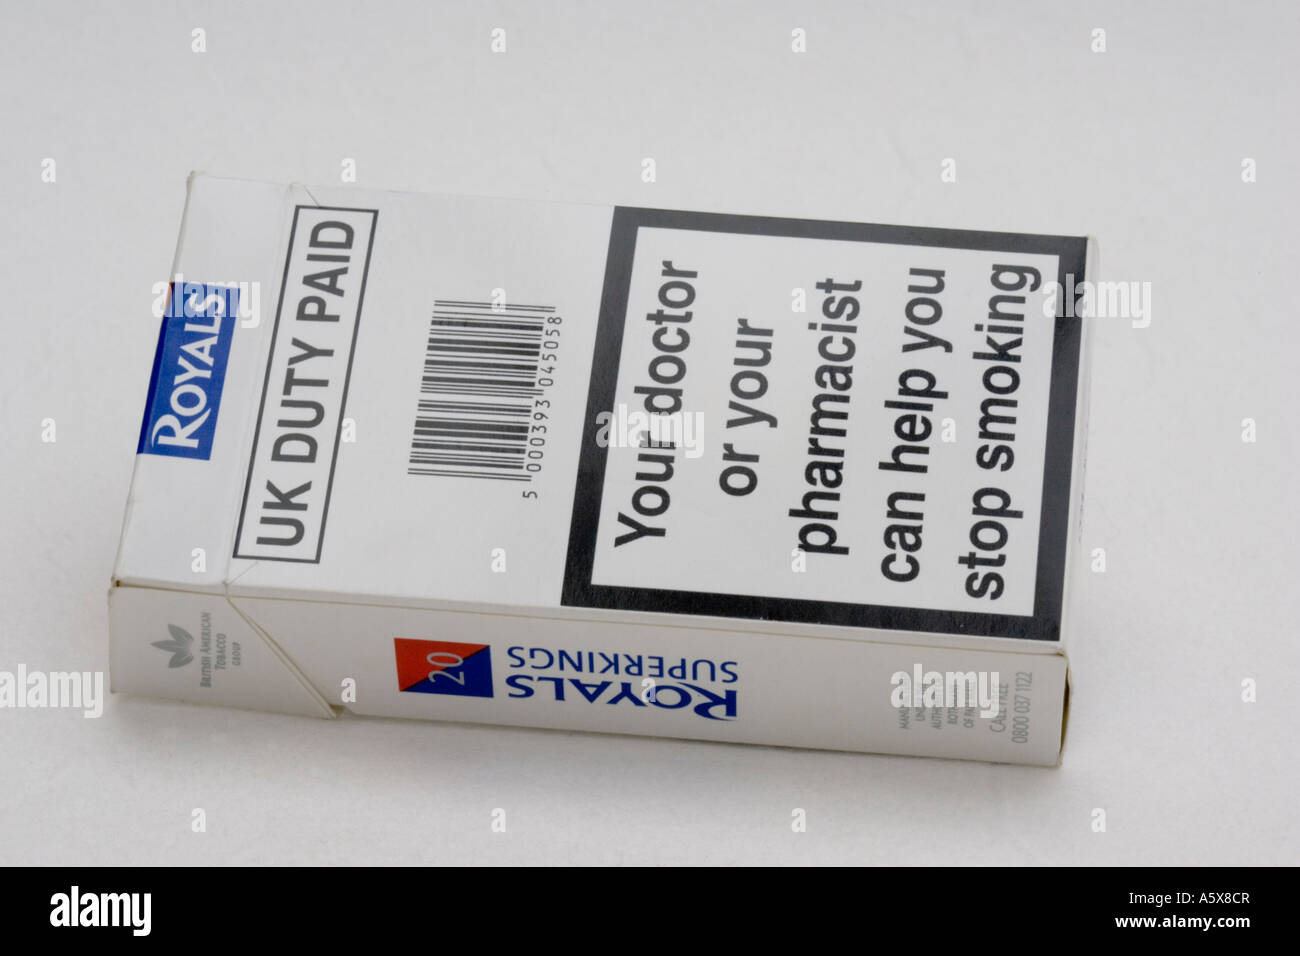 Cheap cigarettes Dunhill brands Florida